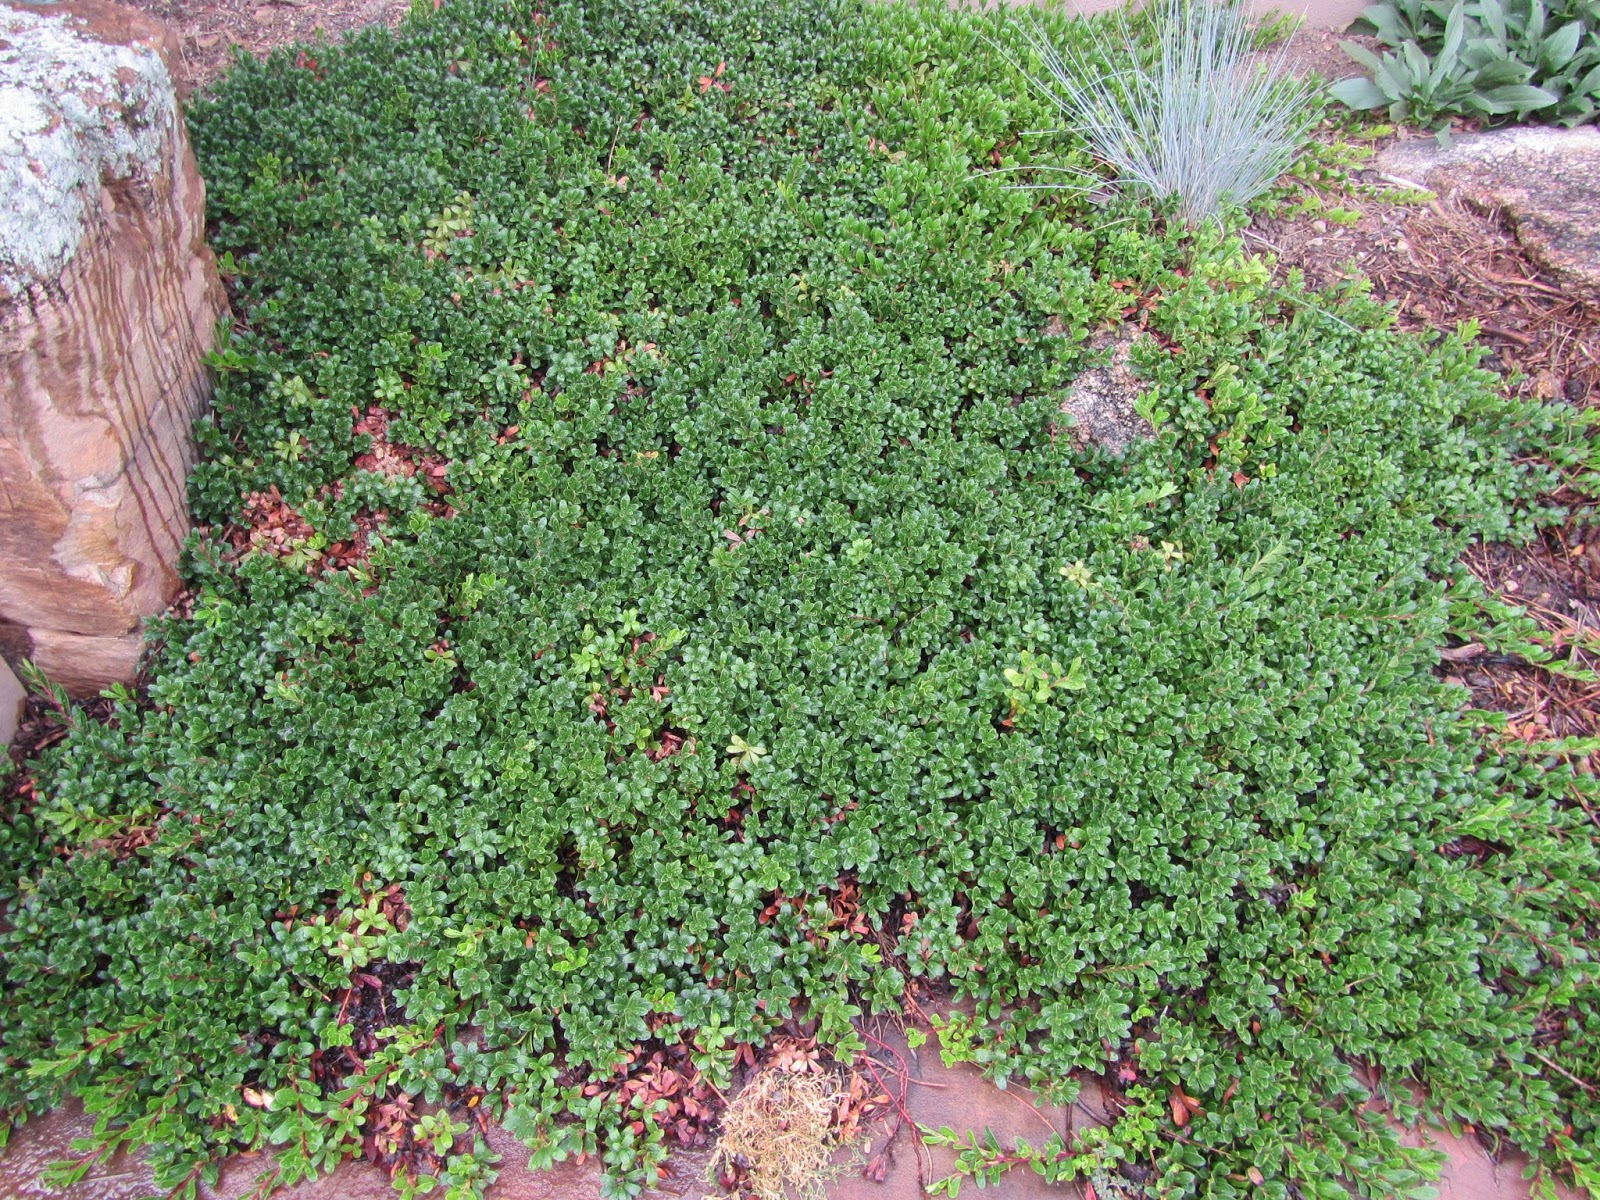 Colorado mountain gardener fire mitigation and landscaping zone 1 dwarf mountain fleabane erigeron compositus native 3 tall mounding plant attracts butterflies pinkish purple ray flowers have yellow centers mightylinksfo